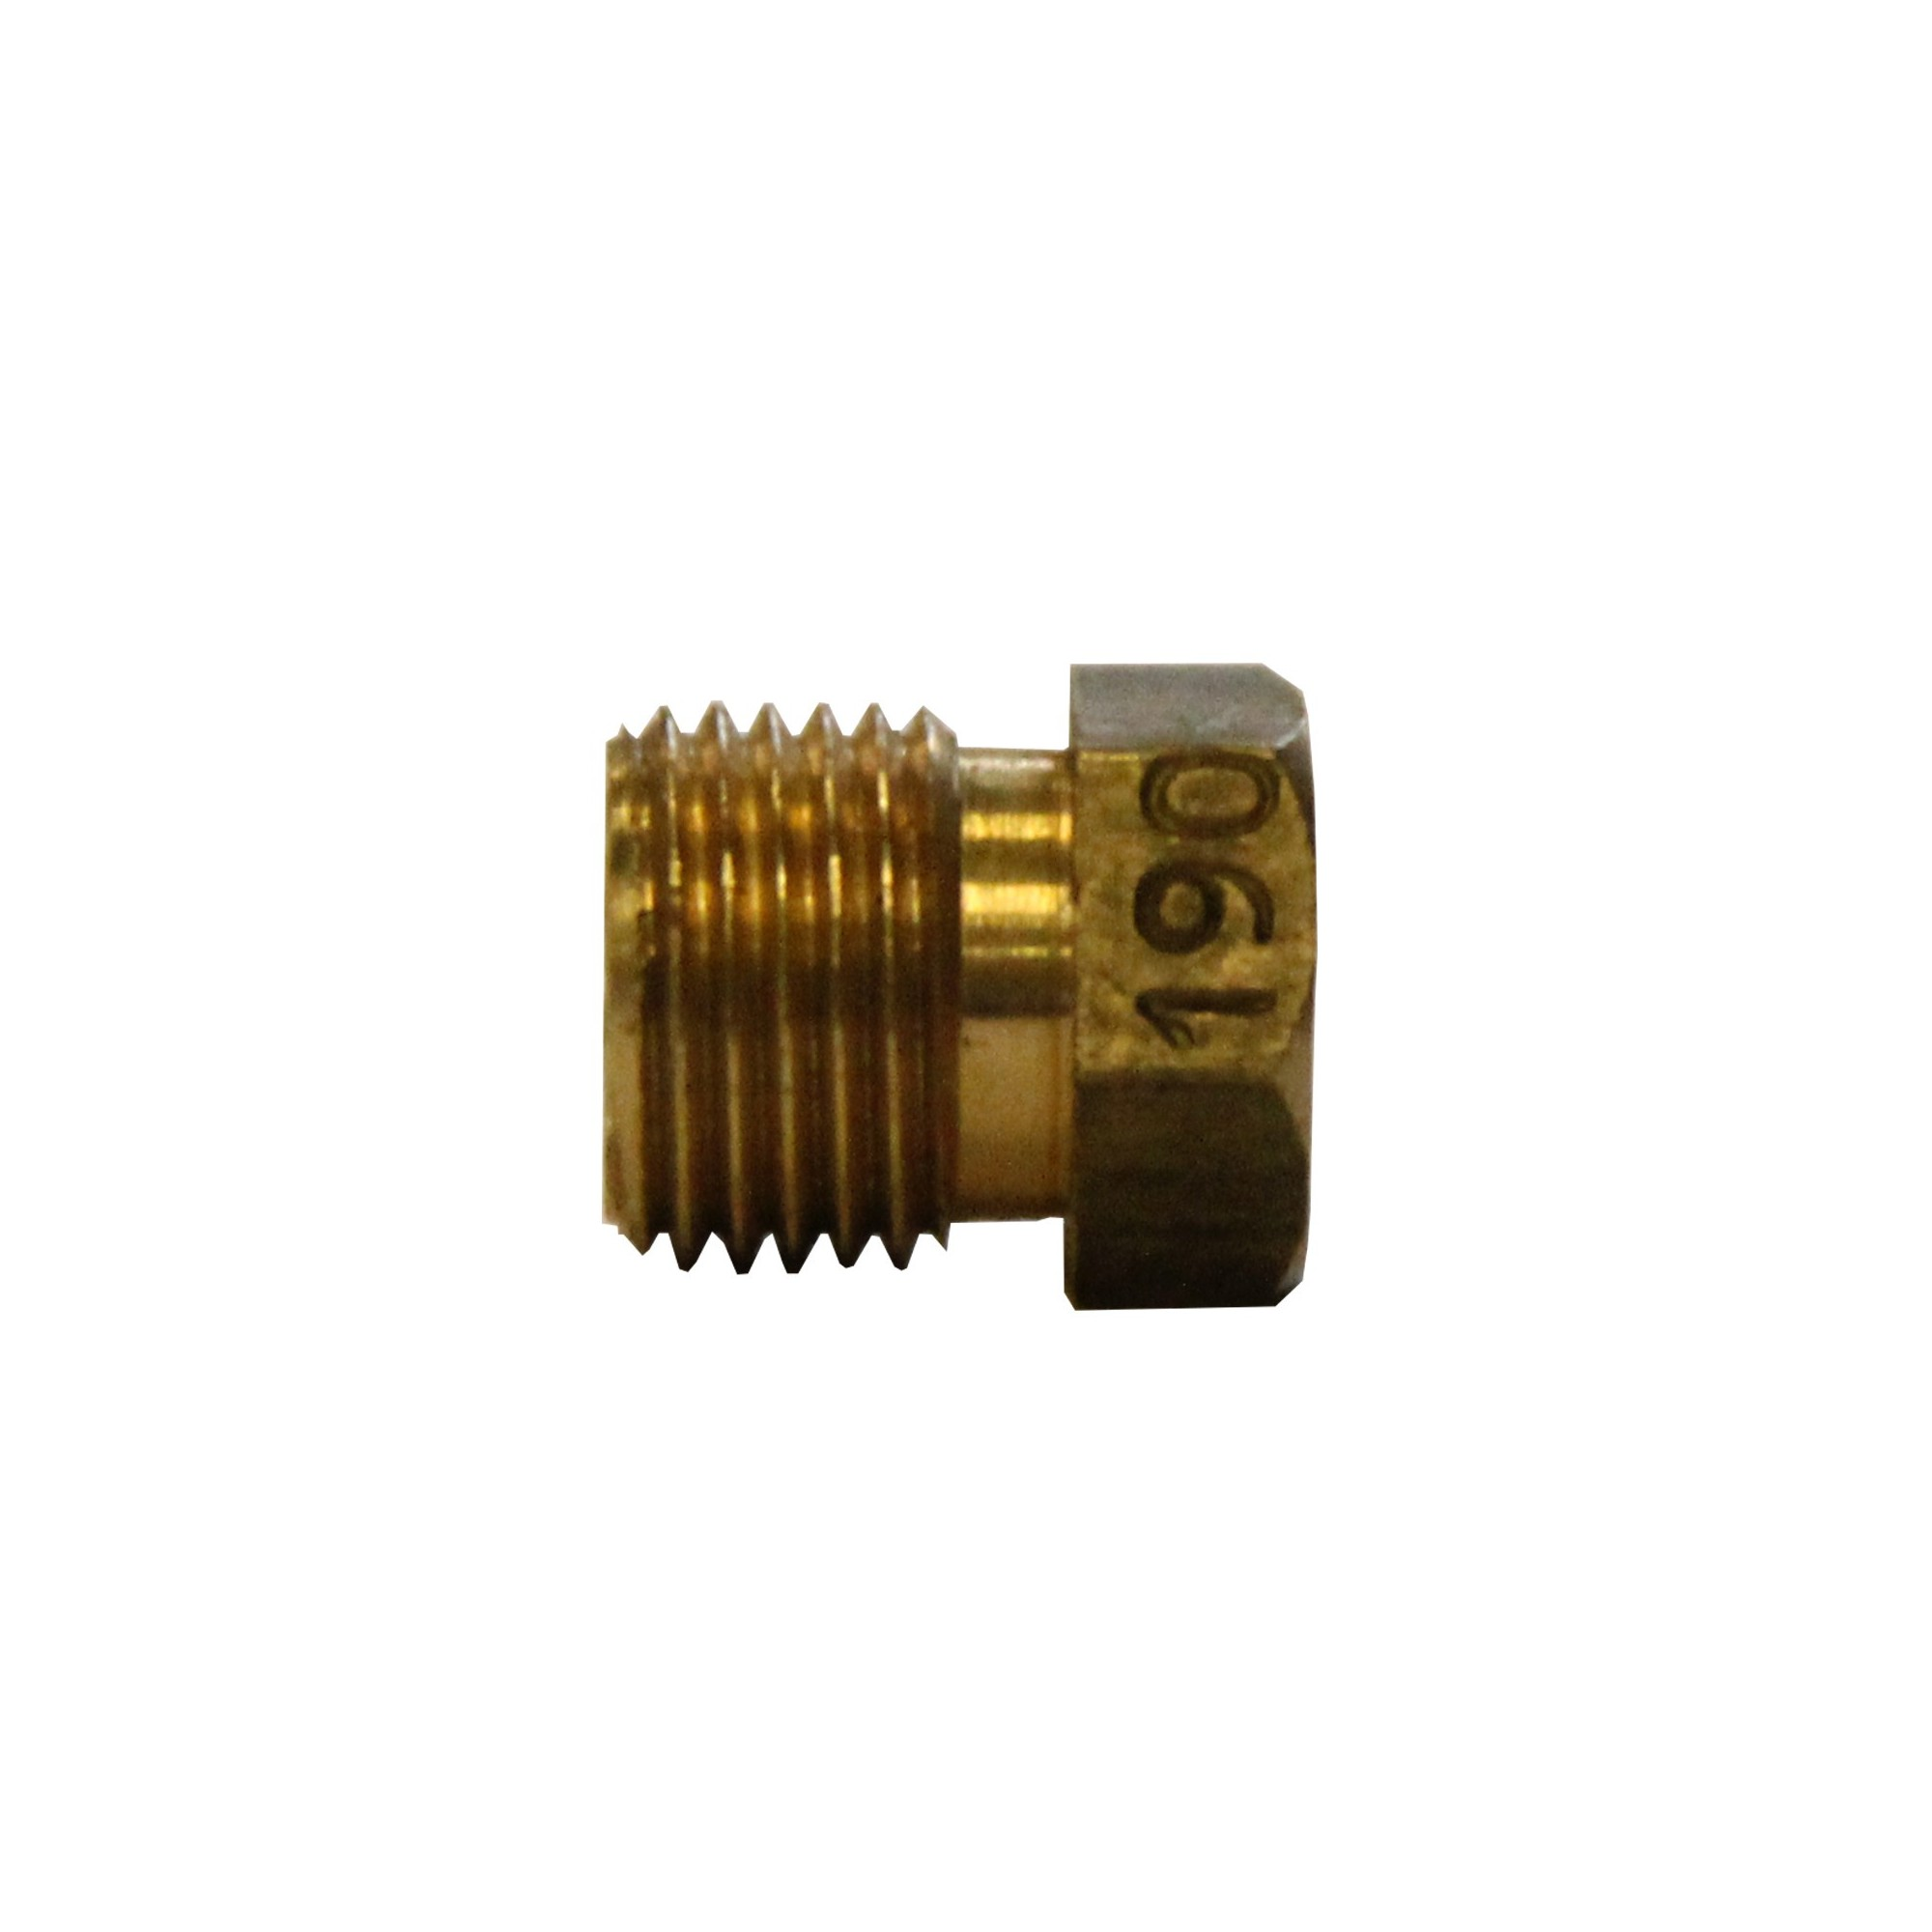 HEAD INJECTOR GAS: 190 x 4